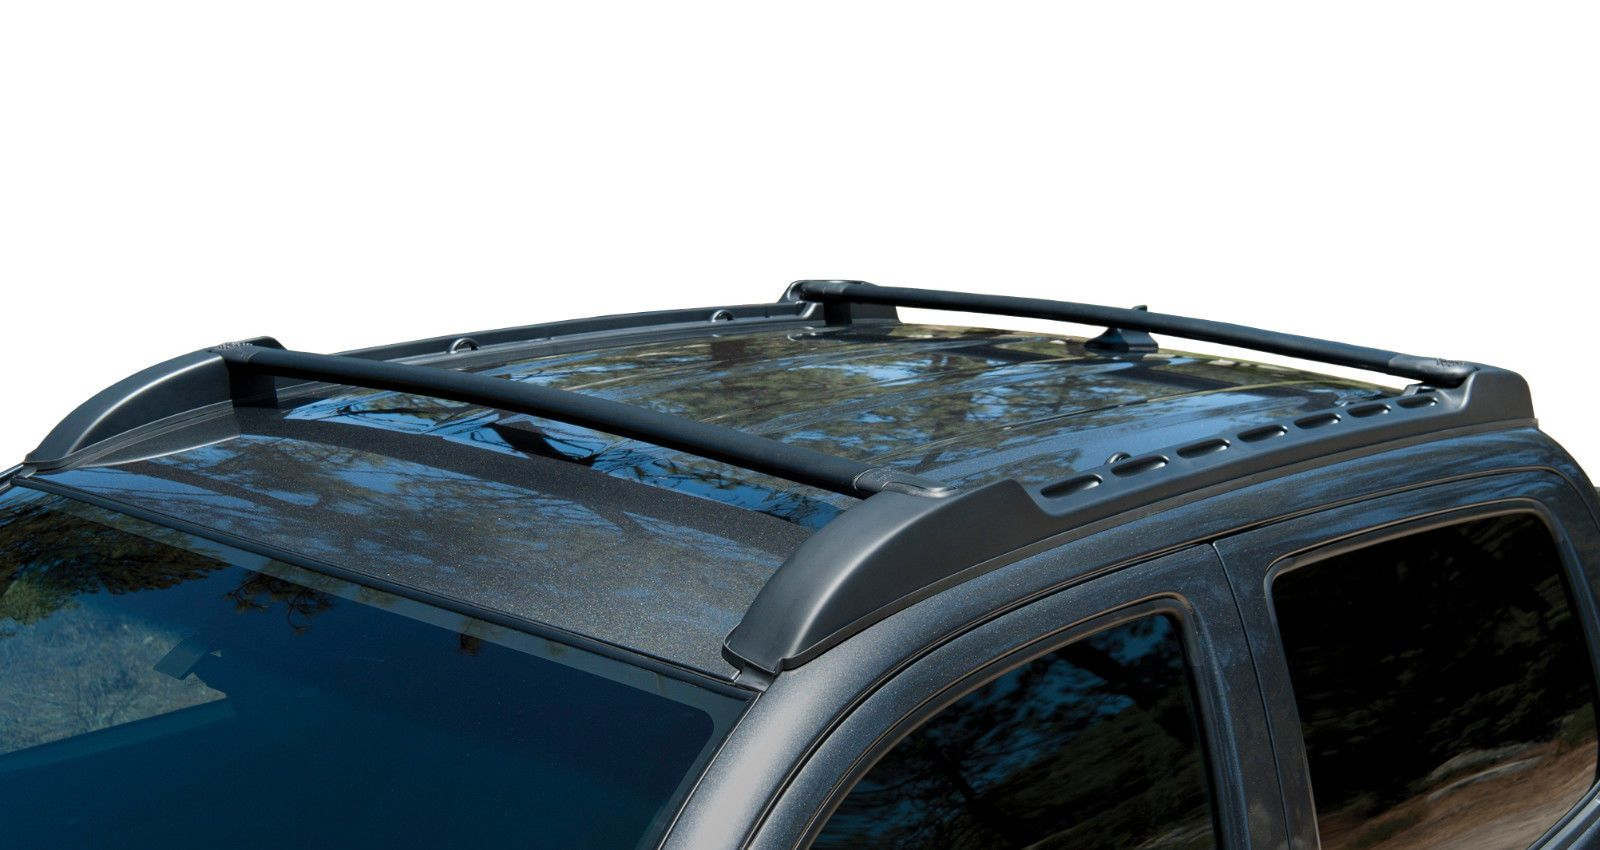 Toyota Tacoma 2005 2017 Double Cab Factory Roof Rack Pt278 35140 Toyota Tacoma 2015 Toyota Tacoma Tacoma